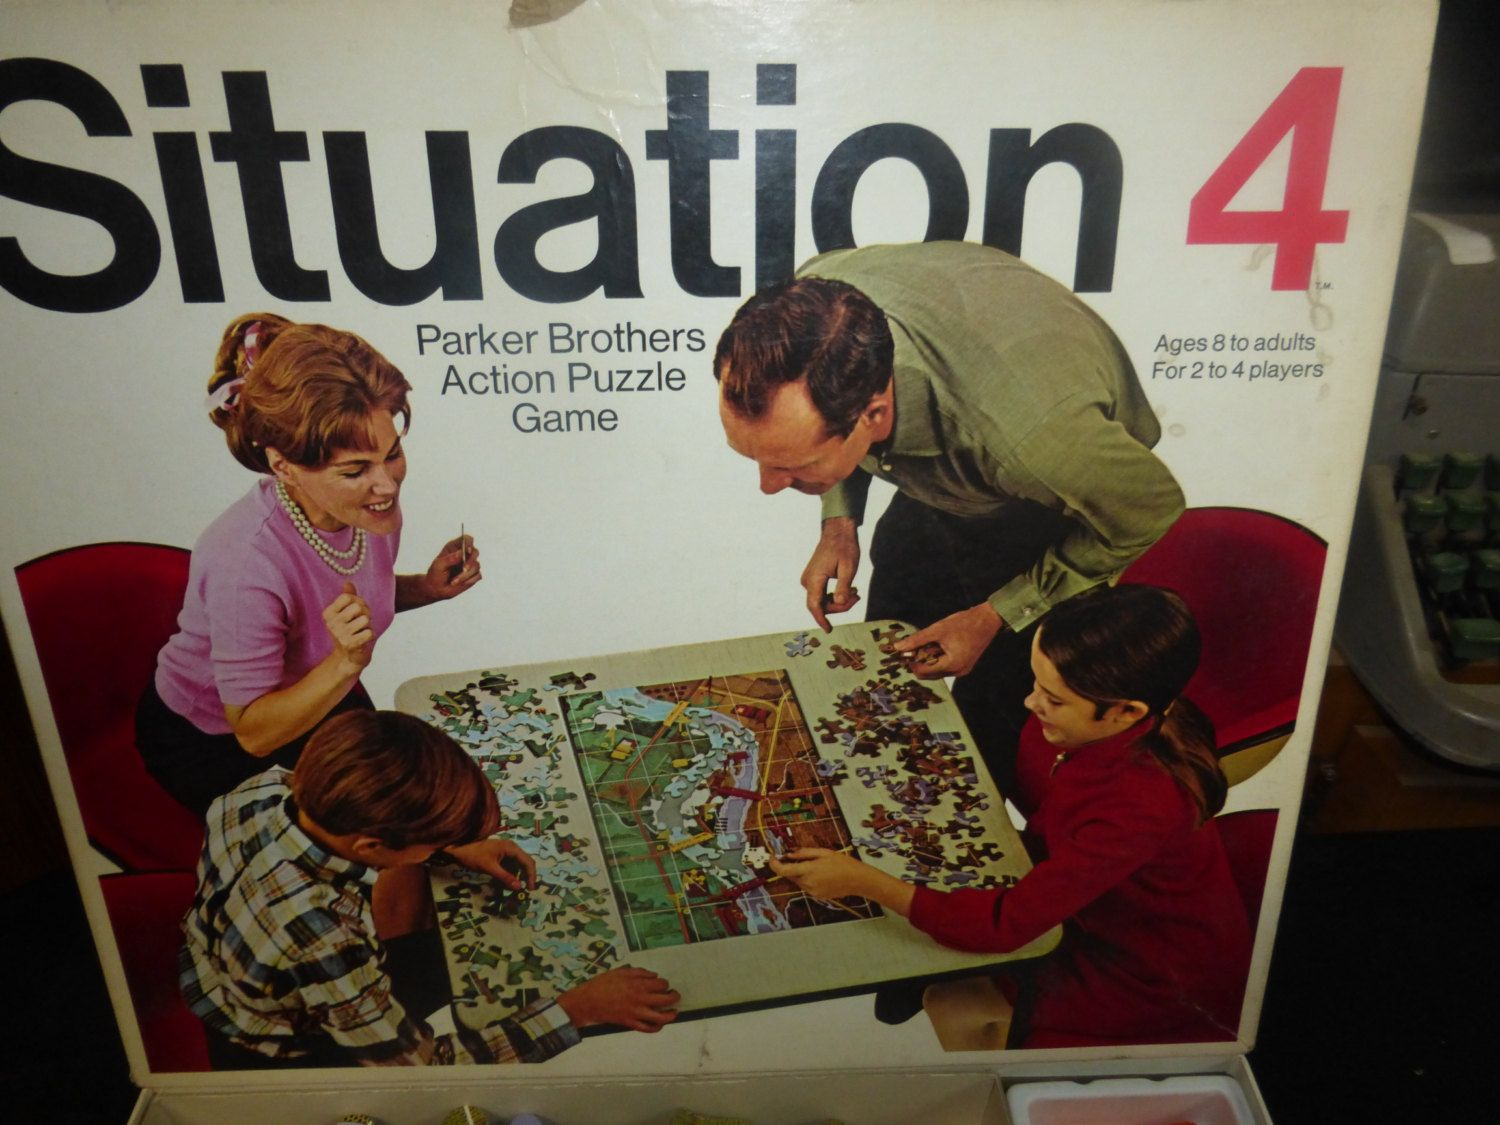 Vintage Board Game, Situation 4 Puzzle War Game from